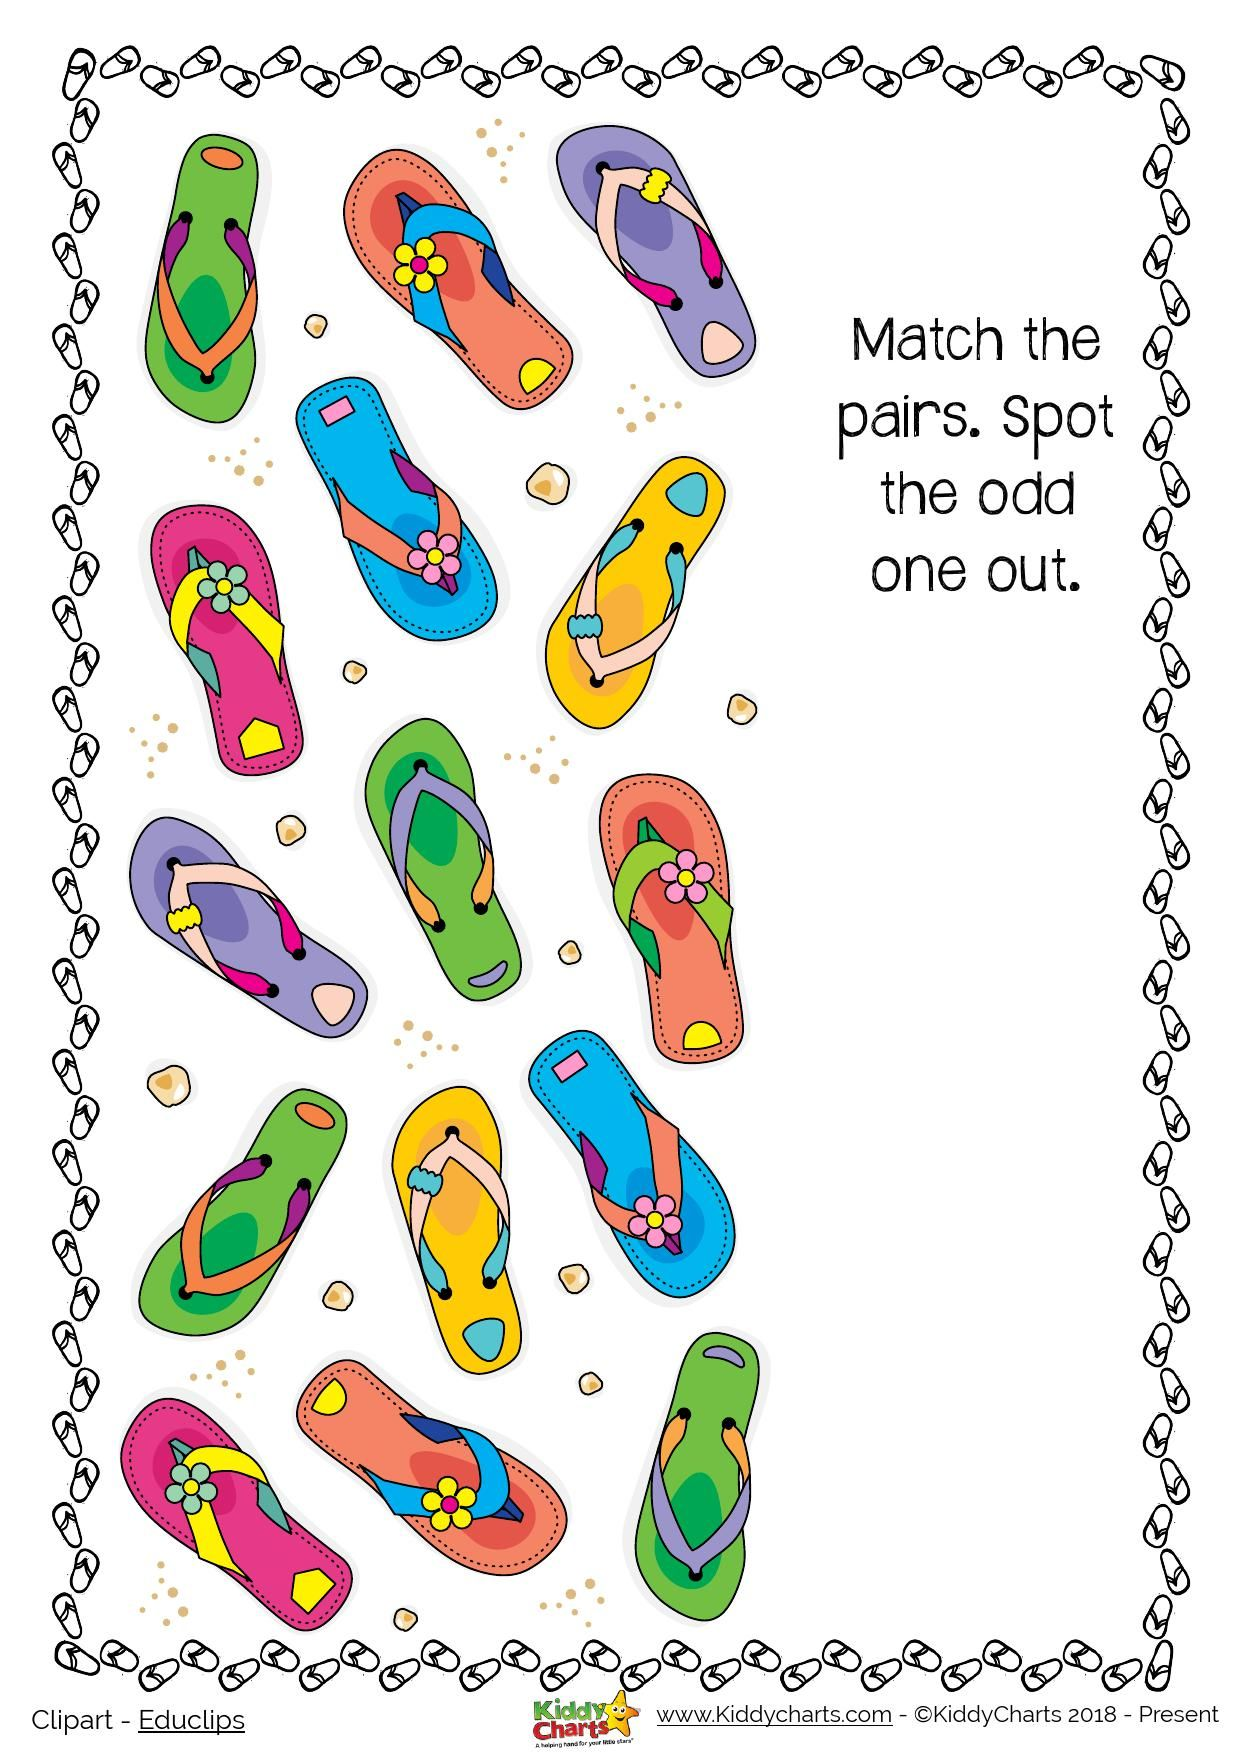 Day 5 Summer Odd One Out Printable Activity Kiddychartssummer Worksheets For Kids Printables Kids Printable Activities [ 1754 x 1240 Pixel ]